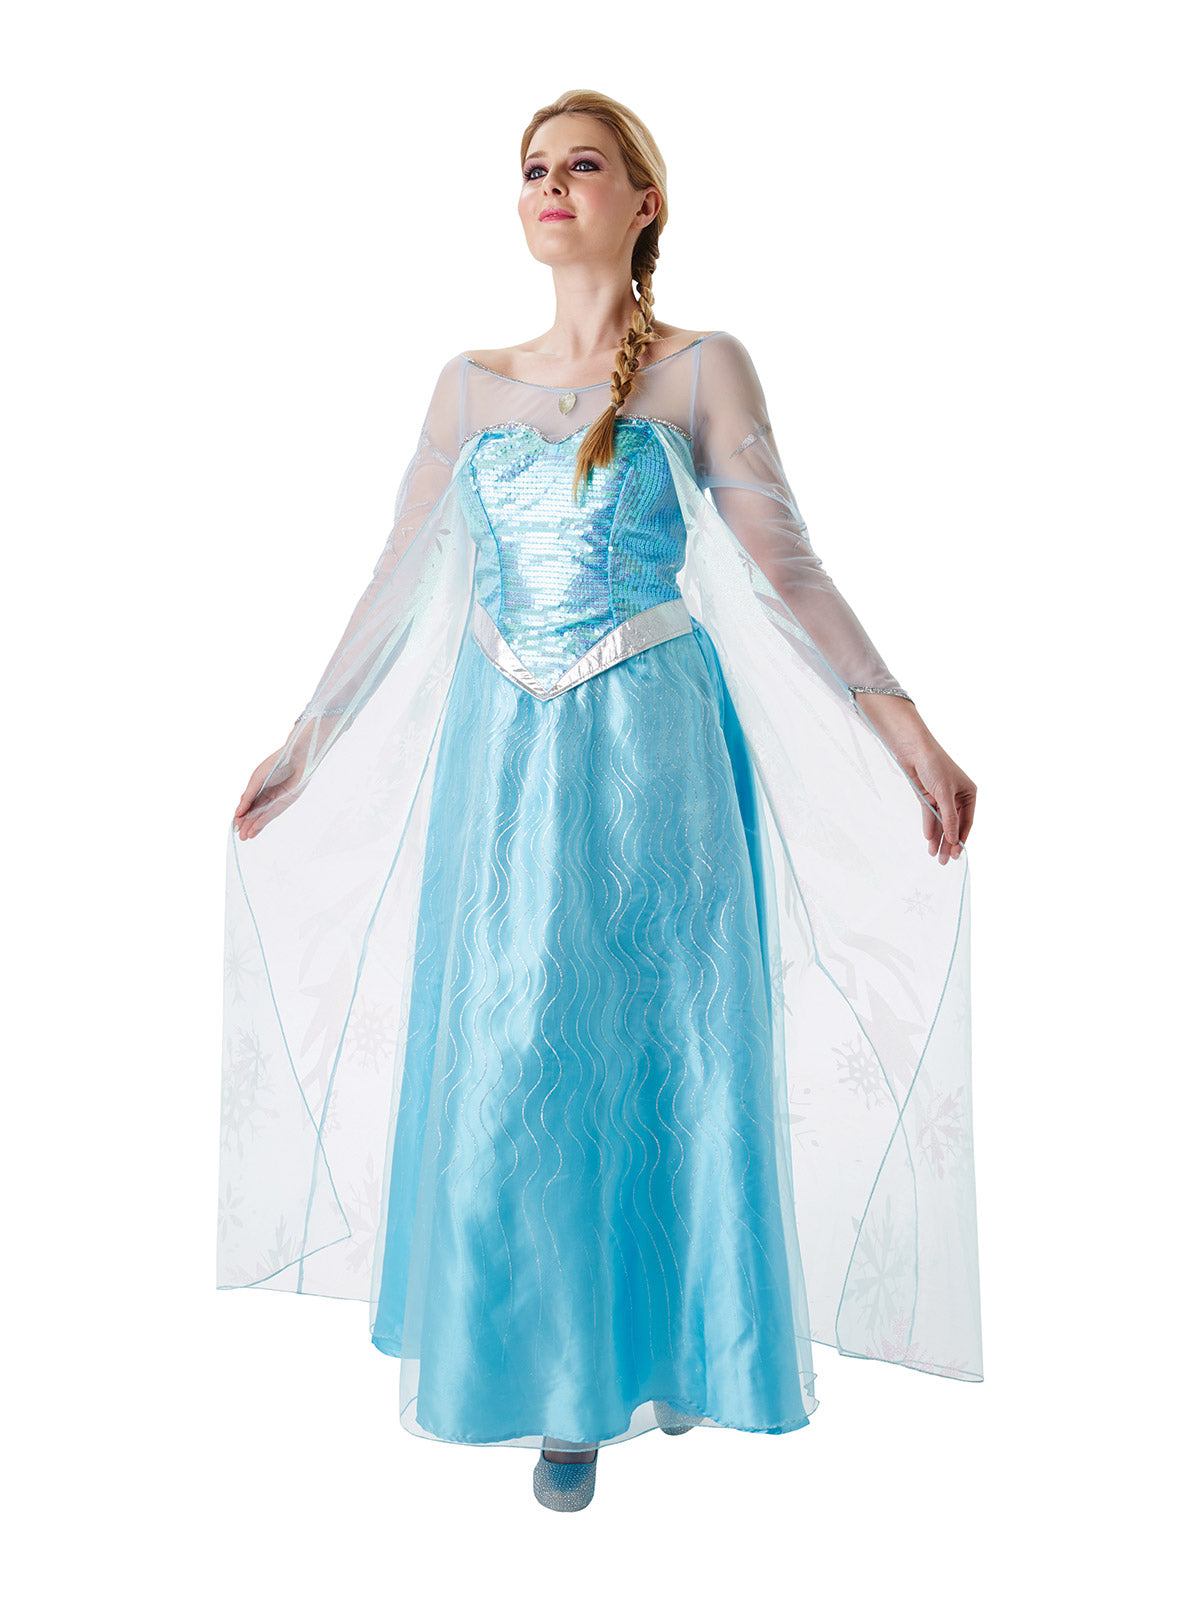 Elsa Deluxe Frozen Costume - Buy Online Only